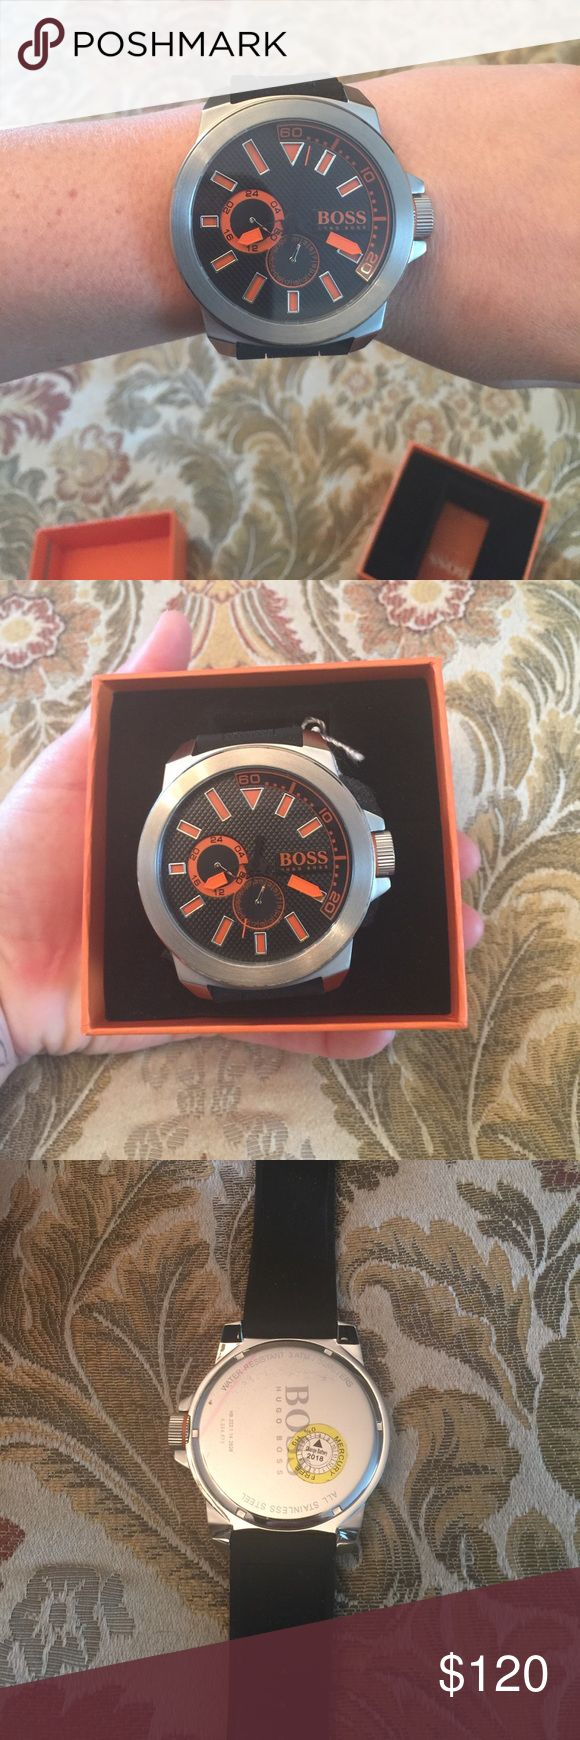 Hugo Boss Men's watch Hugo boss men's watch brand new in box never worn with tags! Stainless steel with black rubber band, adjustable. Hugo Boss Accessories Watches